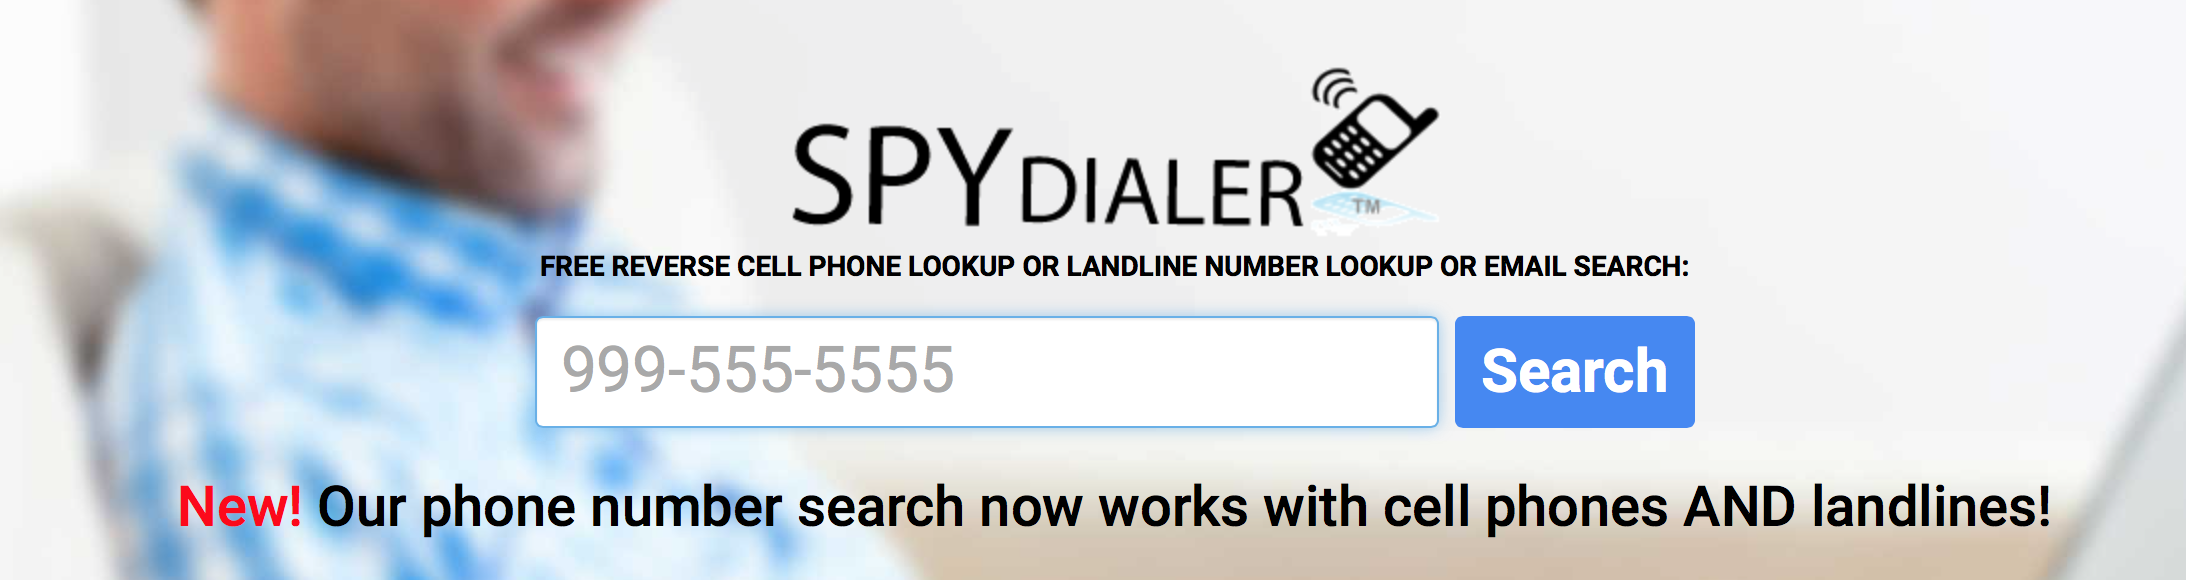 enter your phone number in the box where the phone number is shown on this page